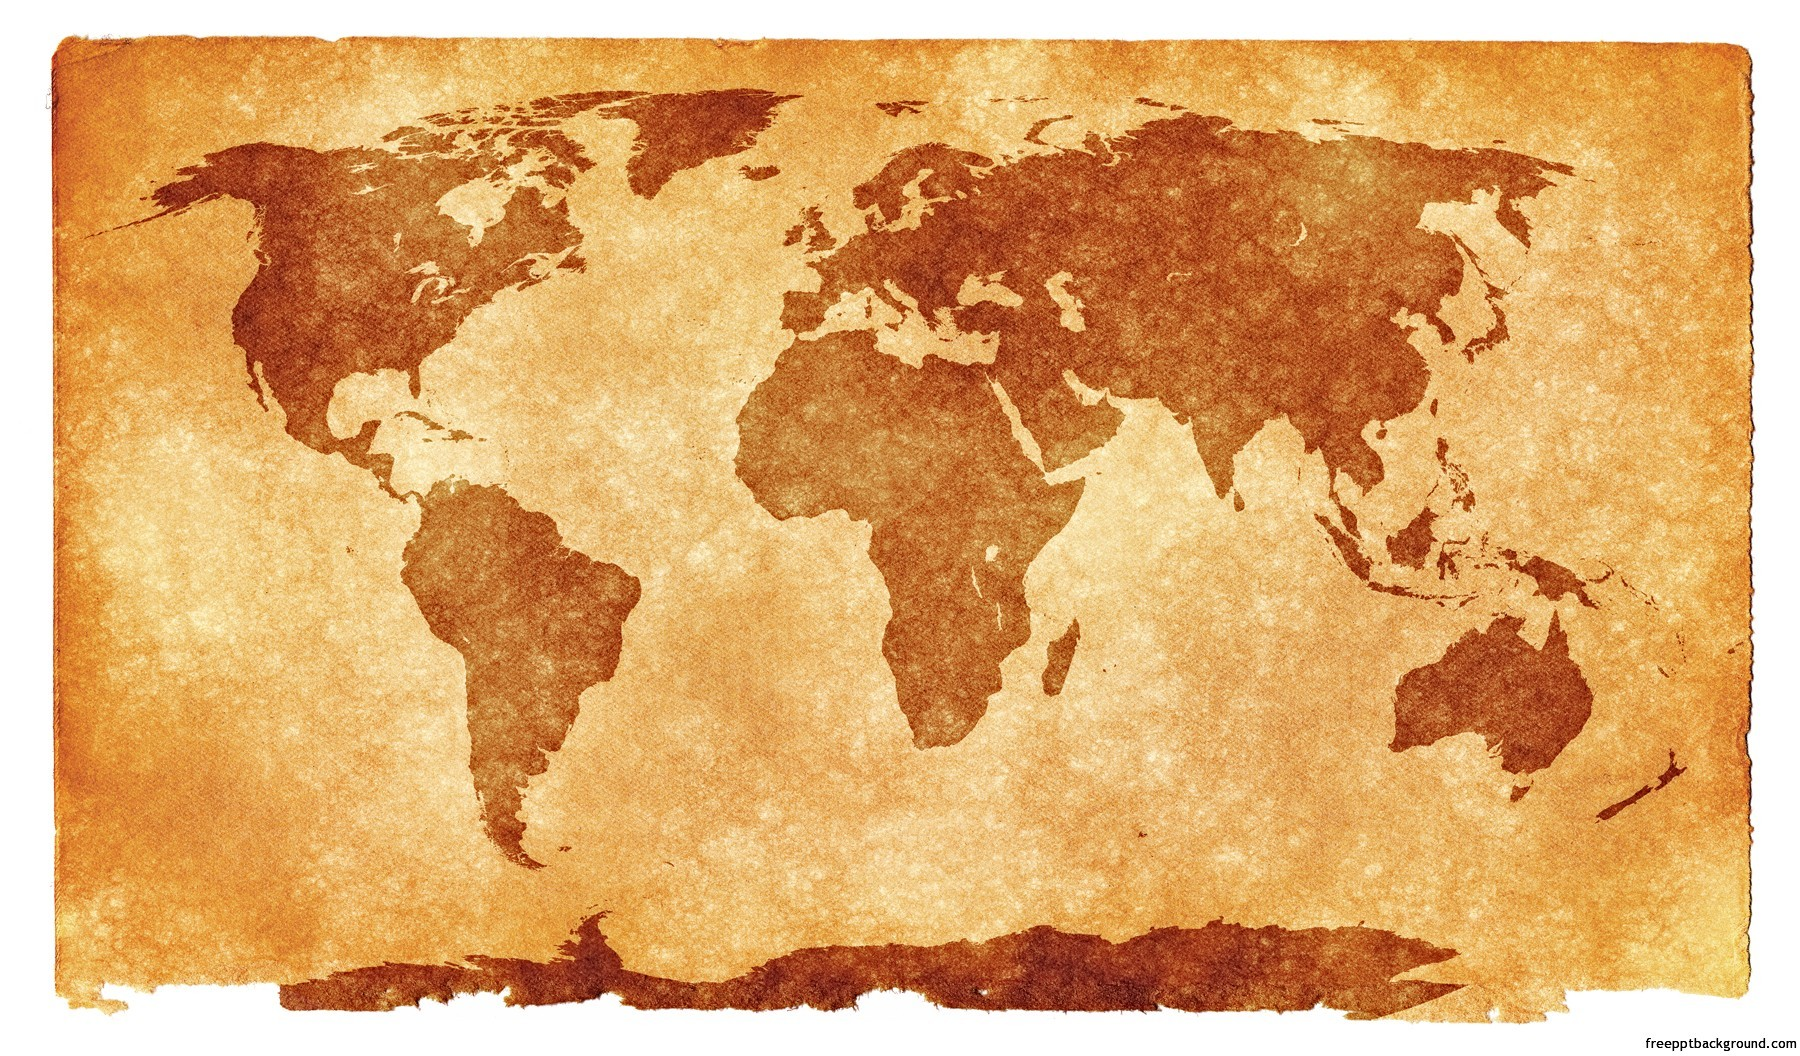 America free ppt backgrounds grunge textured world map for ppt presentations gumiabroncs Images